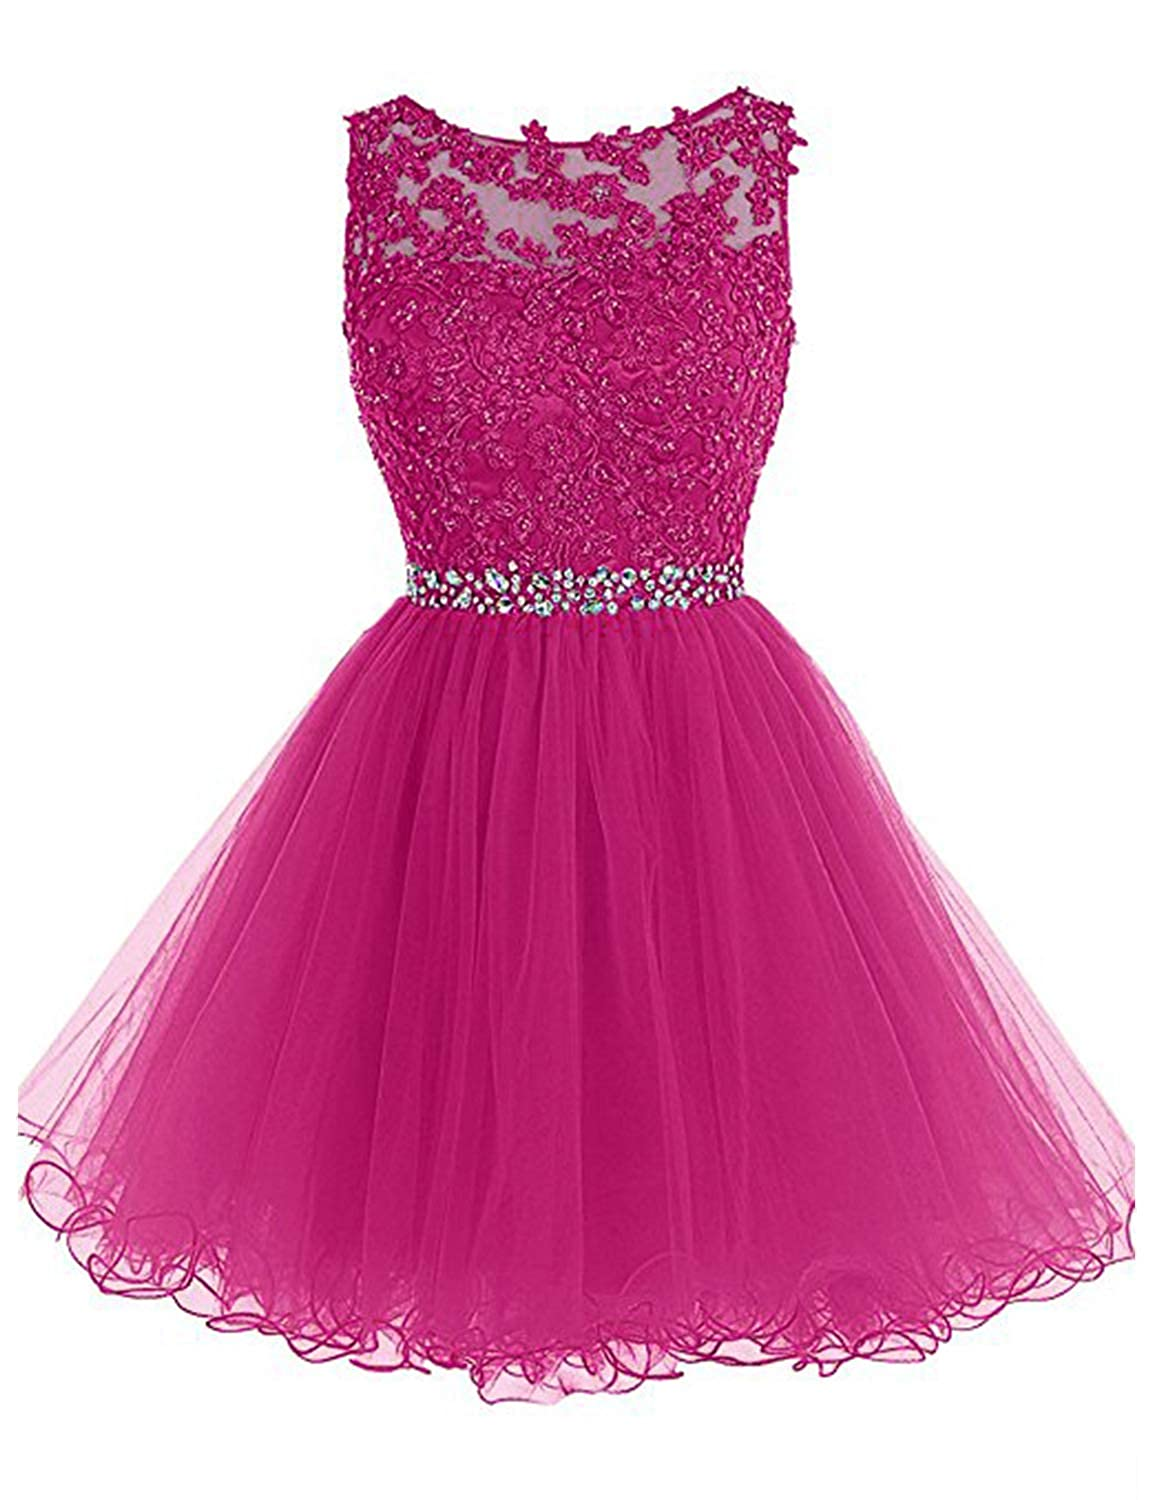 0 Fuchsia Vimans Women's Short Tulle Homecoming Dresses 2018 Knee Length Lace Prom Gowns Dress448